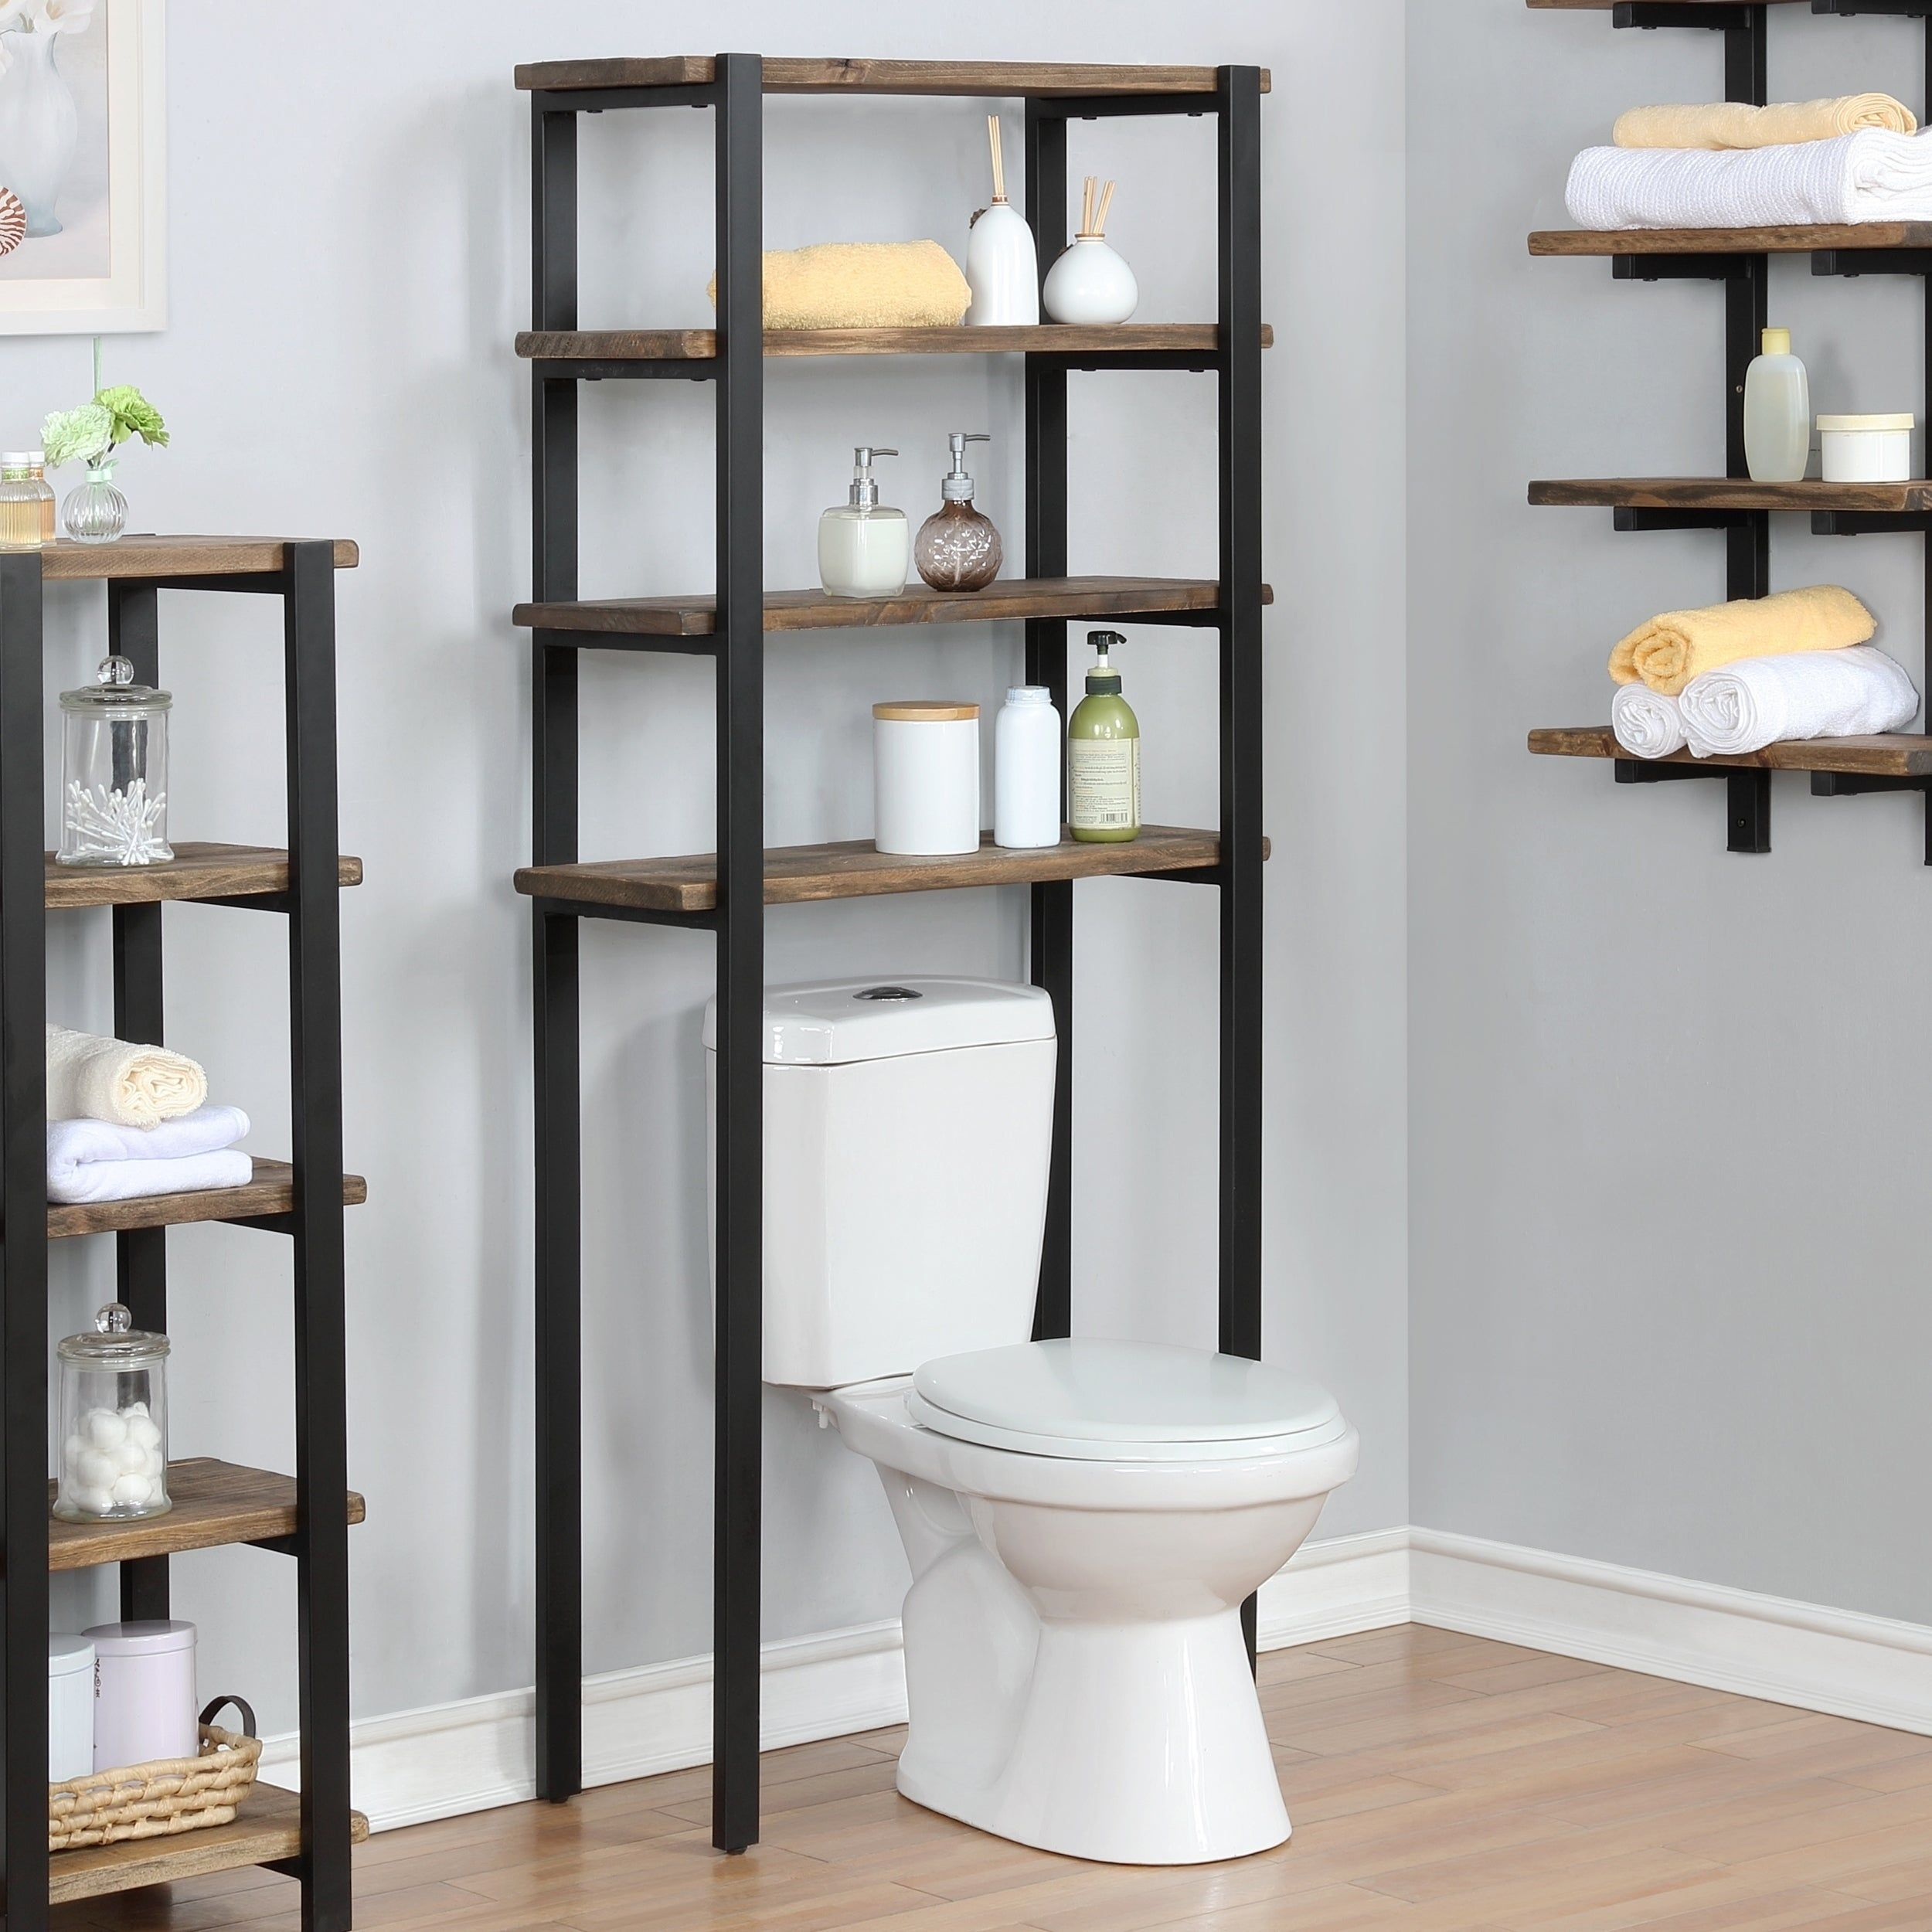 Carbon Loft Lawrence 64 Inch Over The Toilet 4 Shelf Bath Storage Brown Toilet Storage Bath Storage Diy Bathroom Decor